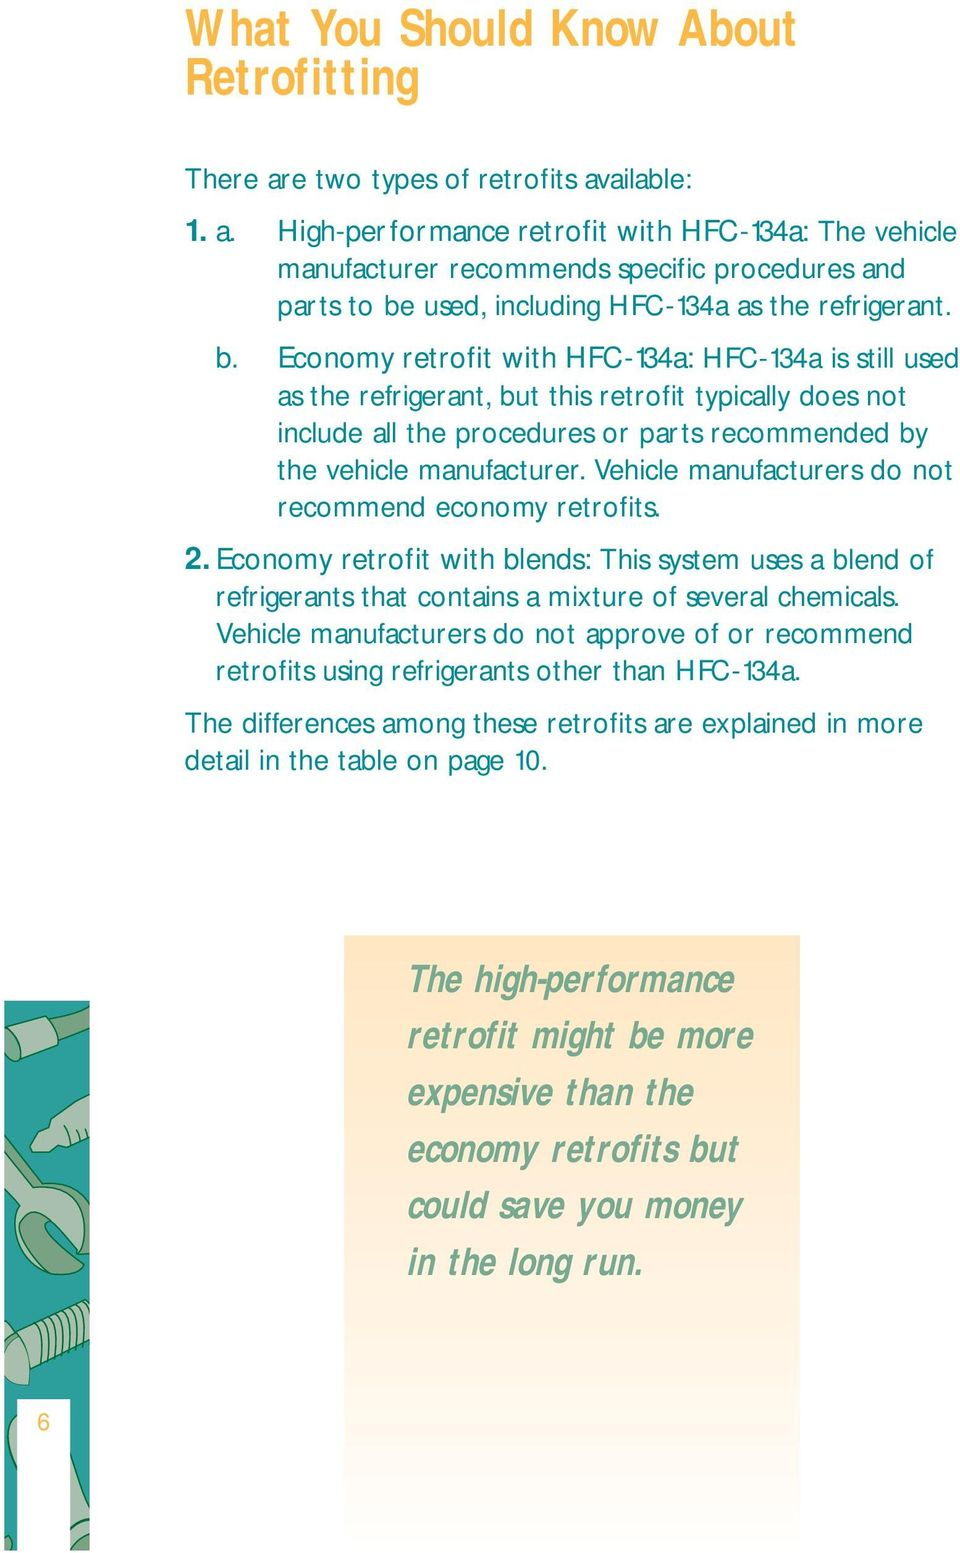 b. Economy retrofit with HFC-134a: HFC-134a is still used as the refrigerant, but this retrofit typically does not include all the procedures or parts recommended by the vehicle manufacturer.